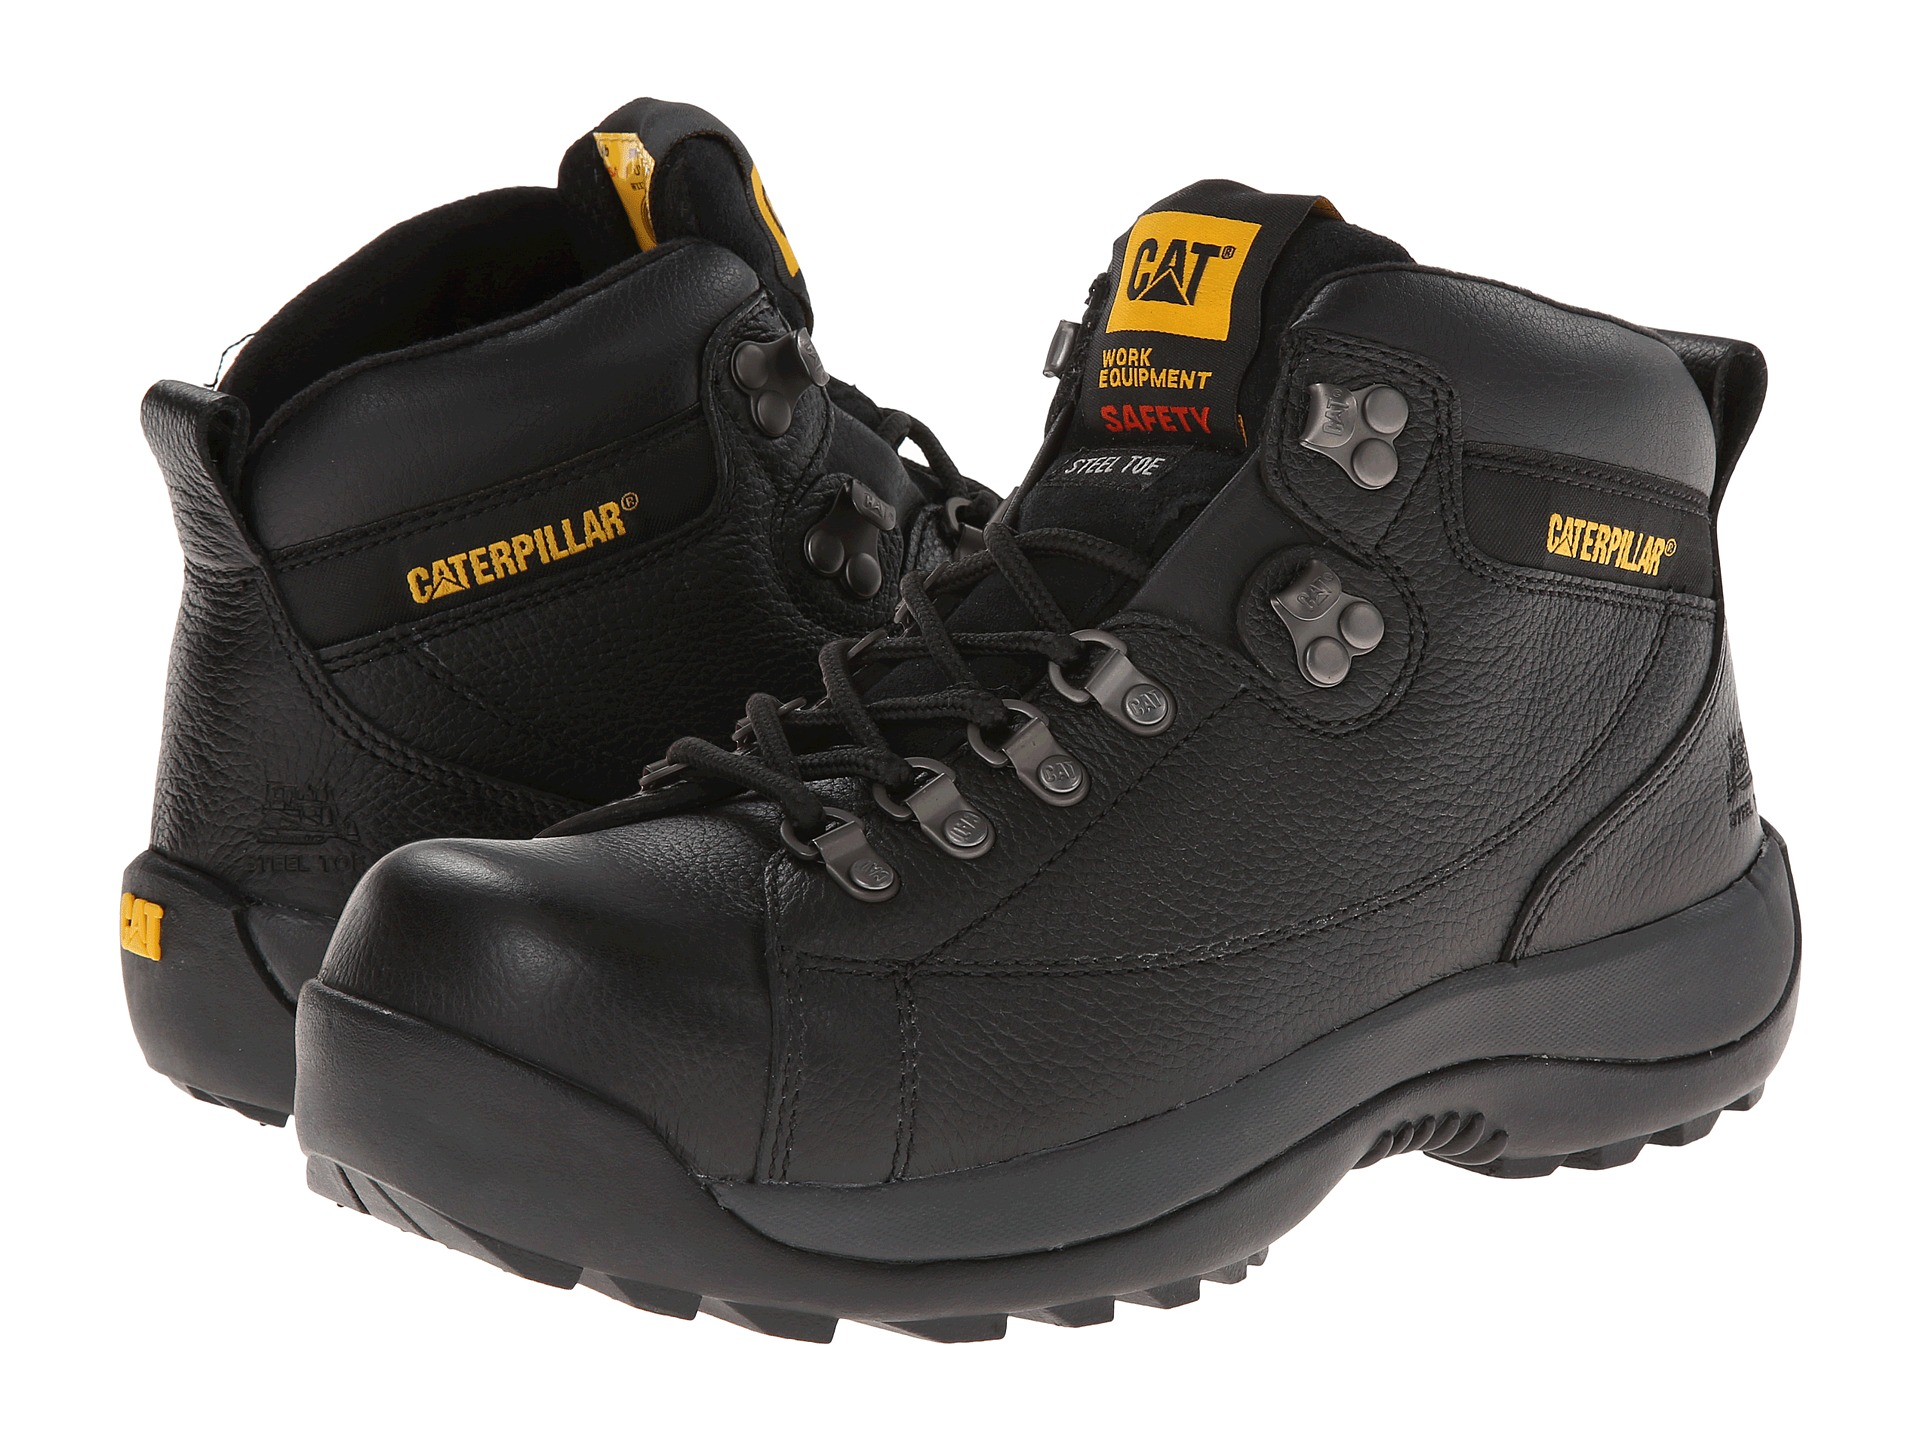 Caterpillar Shoes For Sale In India